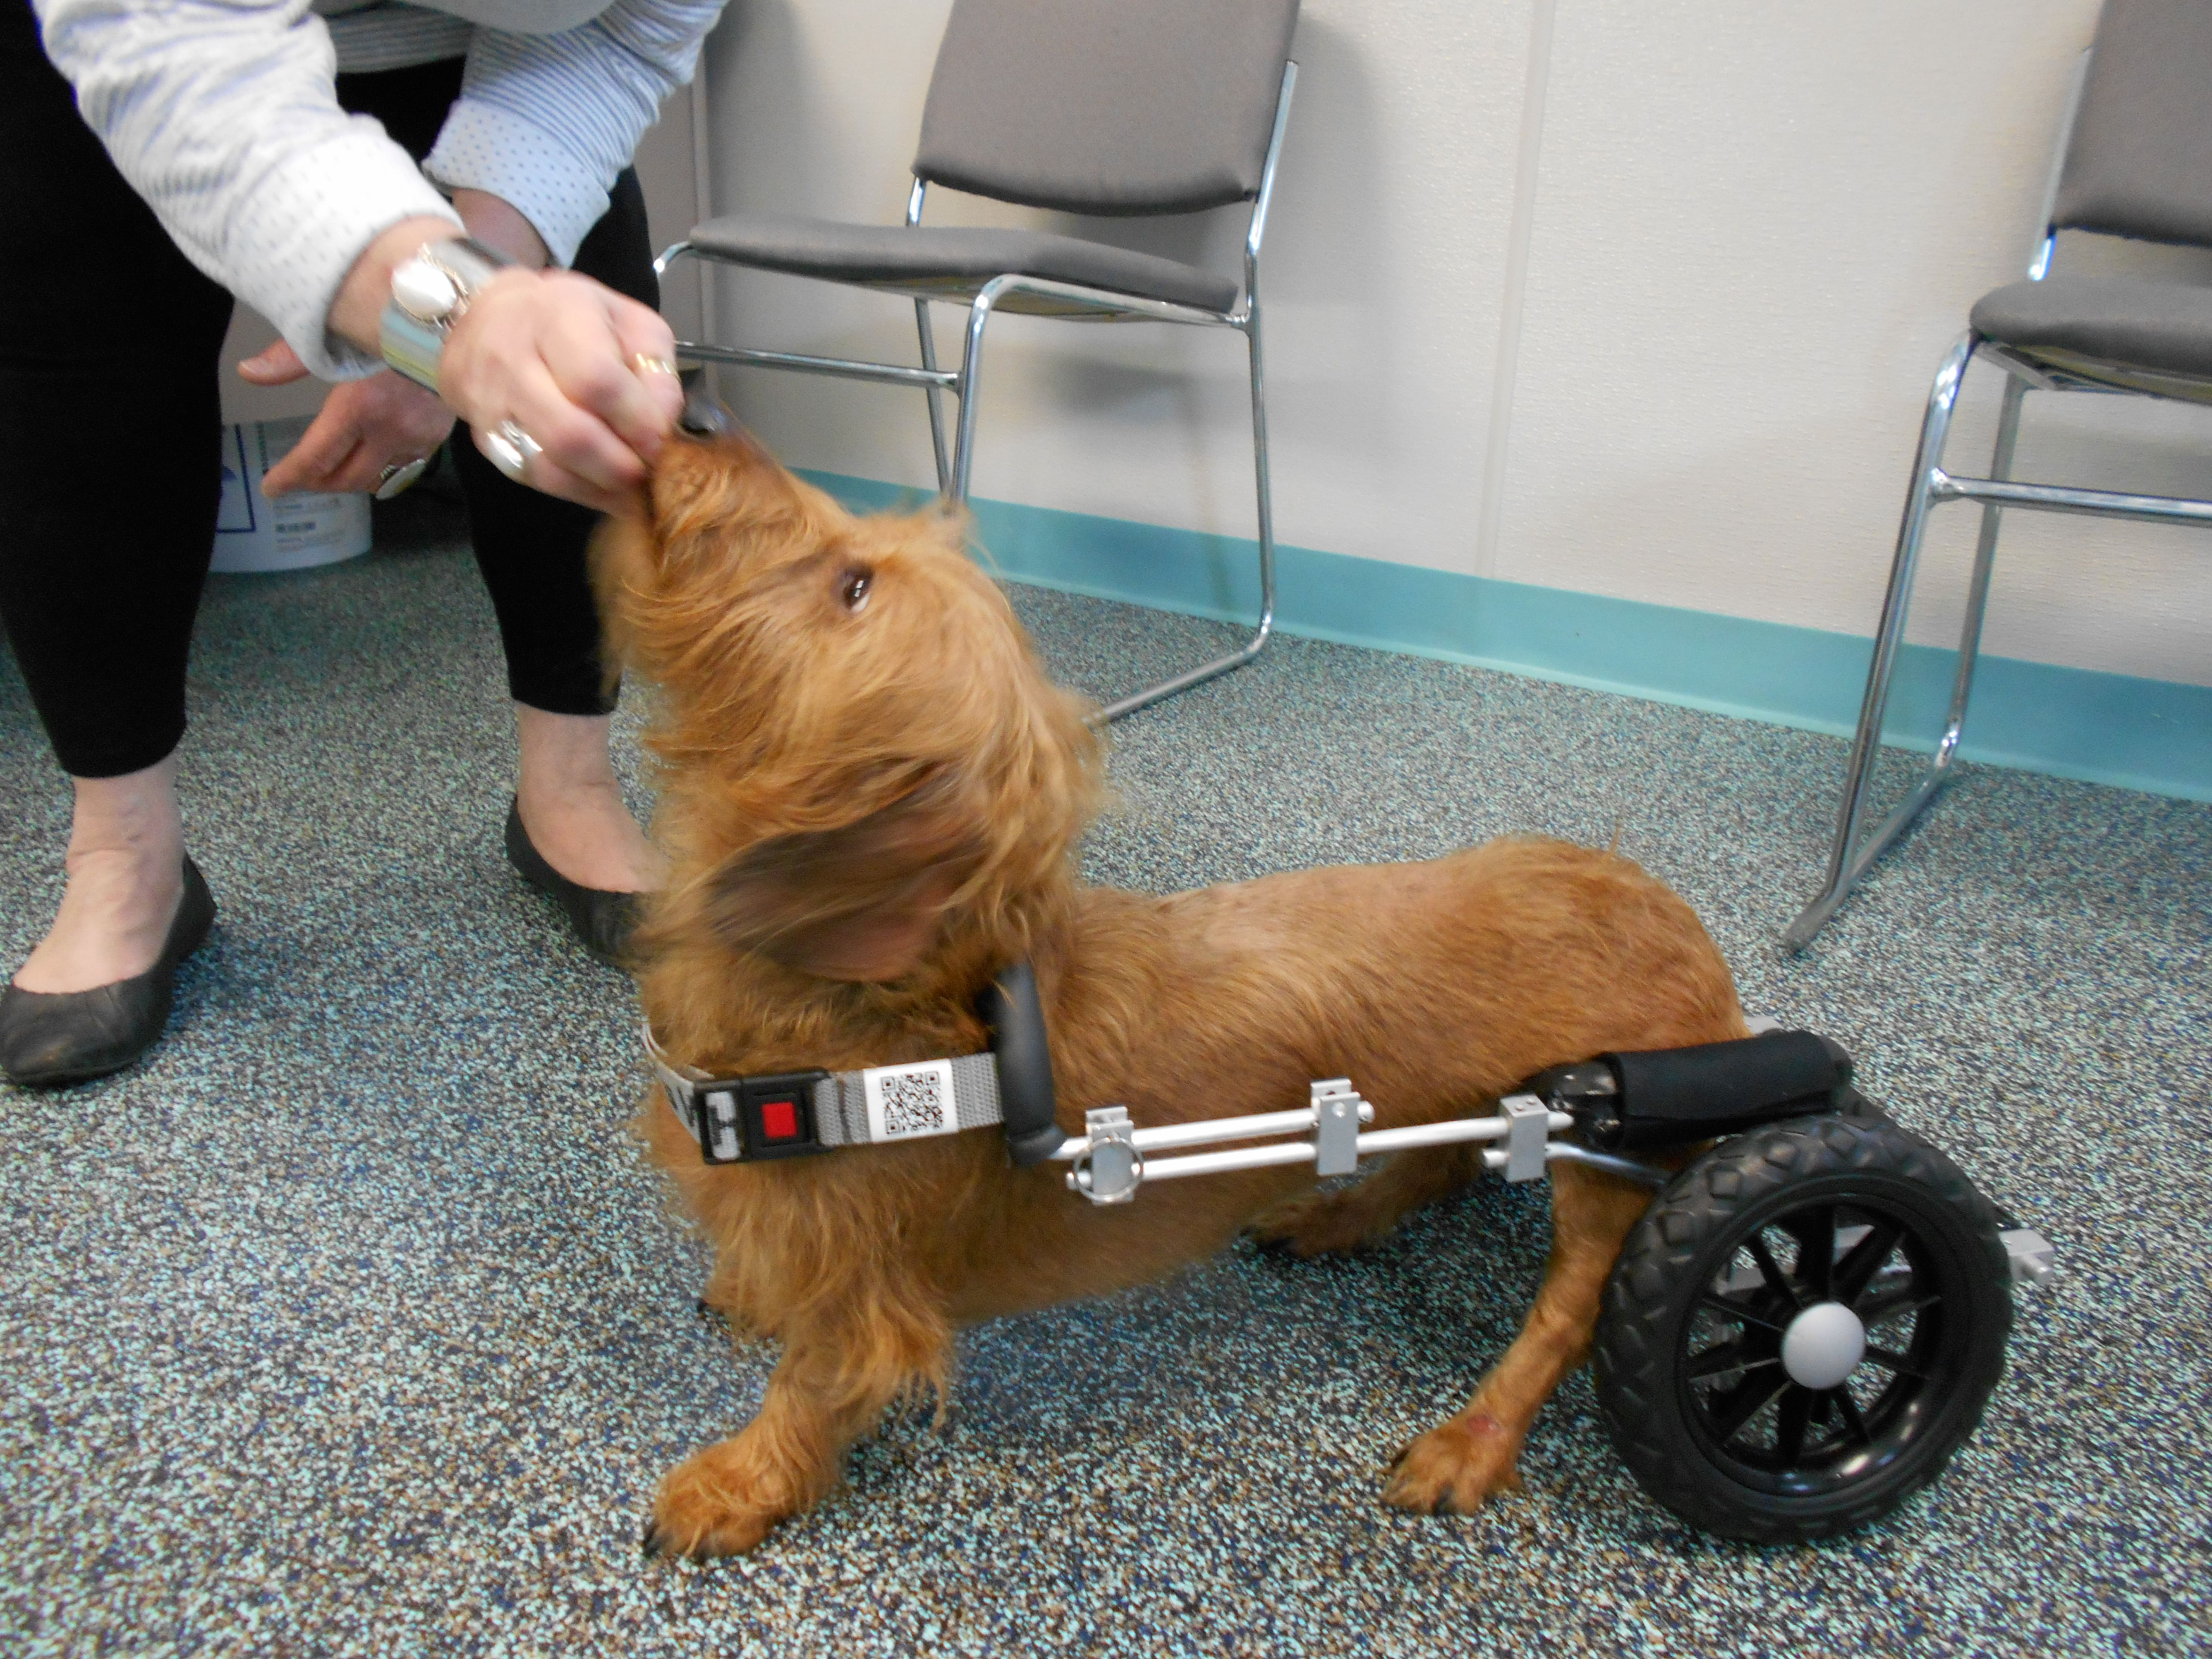 Maia is trying out her new cart from Eddie's Wheels. She